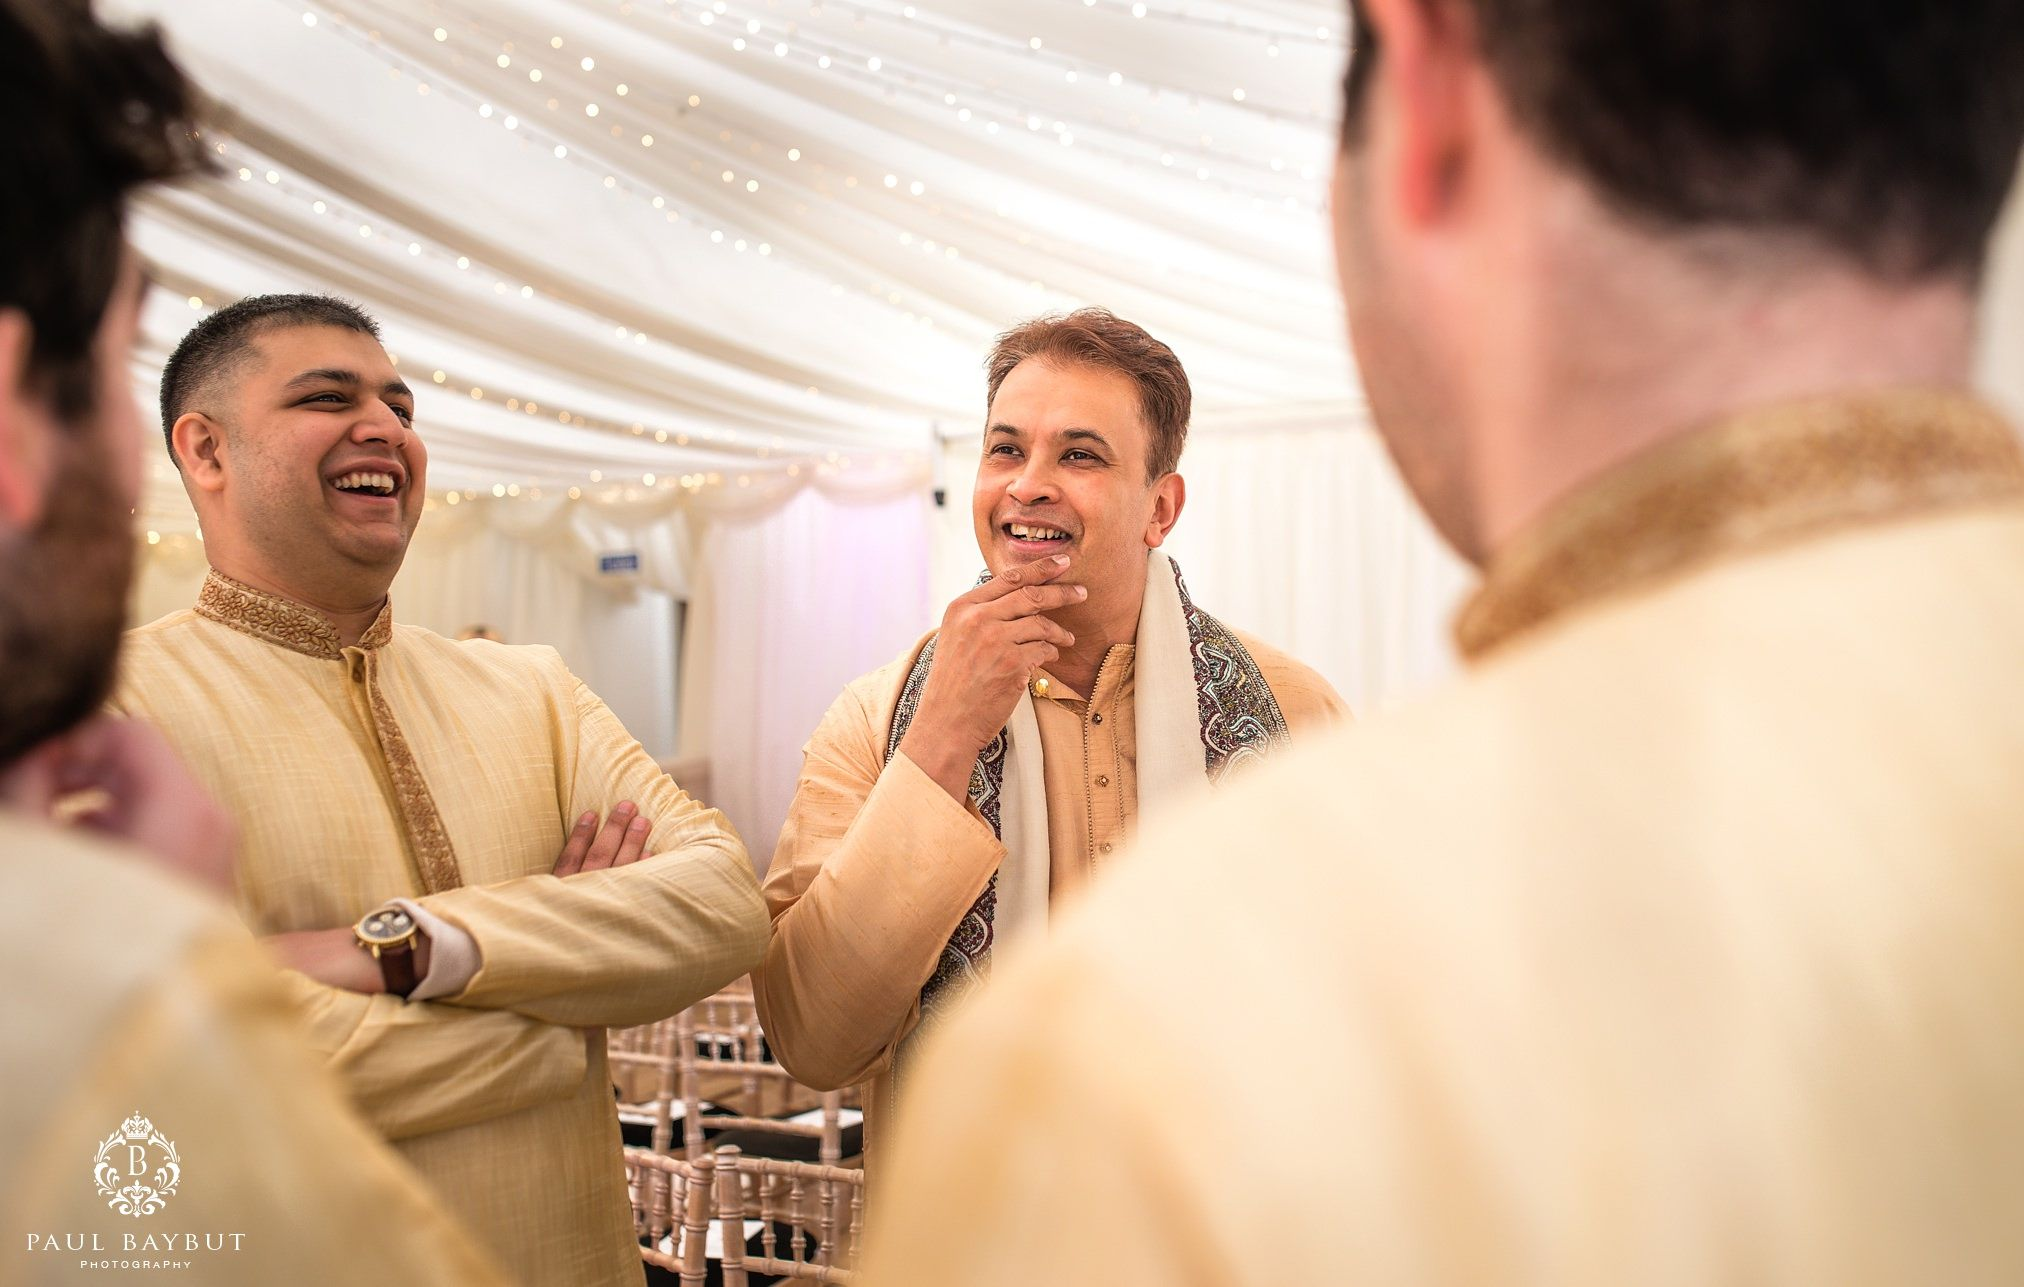 Thornton manor wedding photography of best men at asian wedding in the marquee